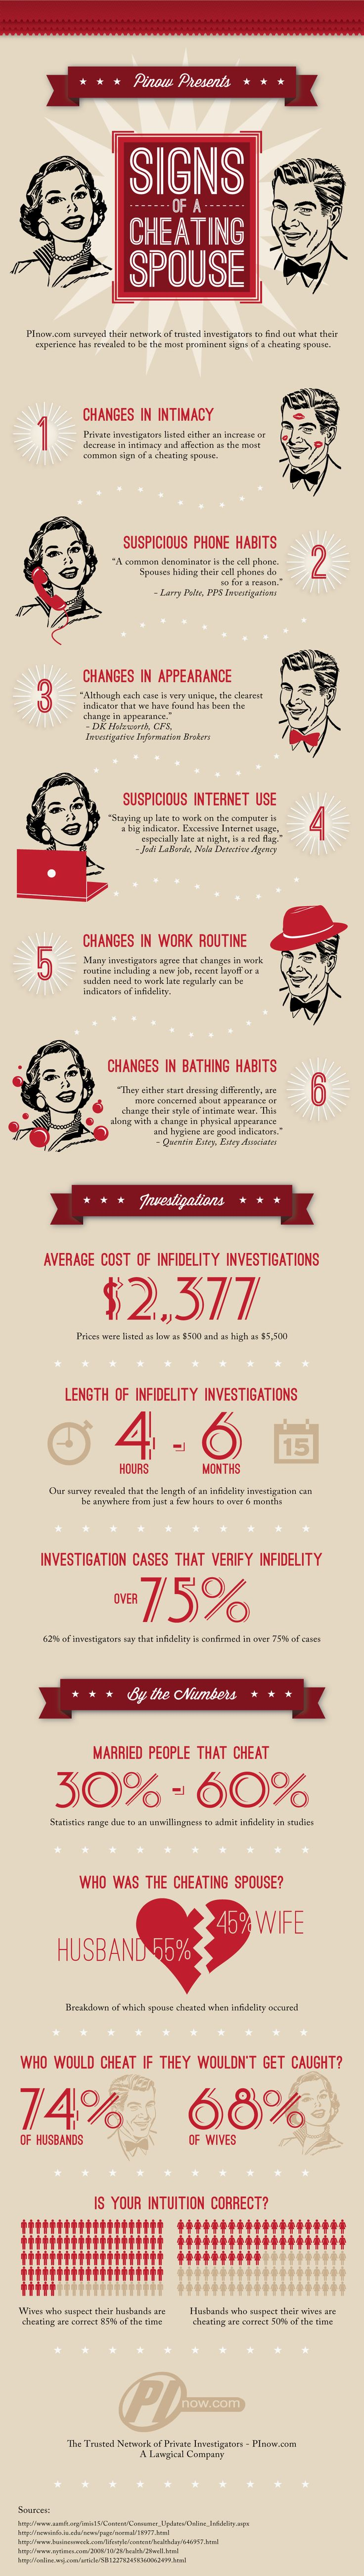 Top signs of Cheat Spouse according to infidelity investigators. Happy Valentines Day!